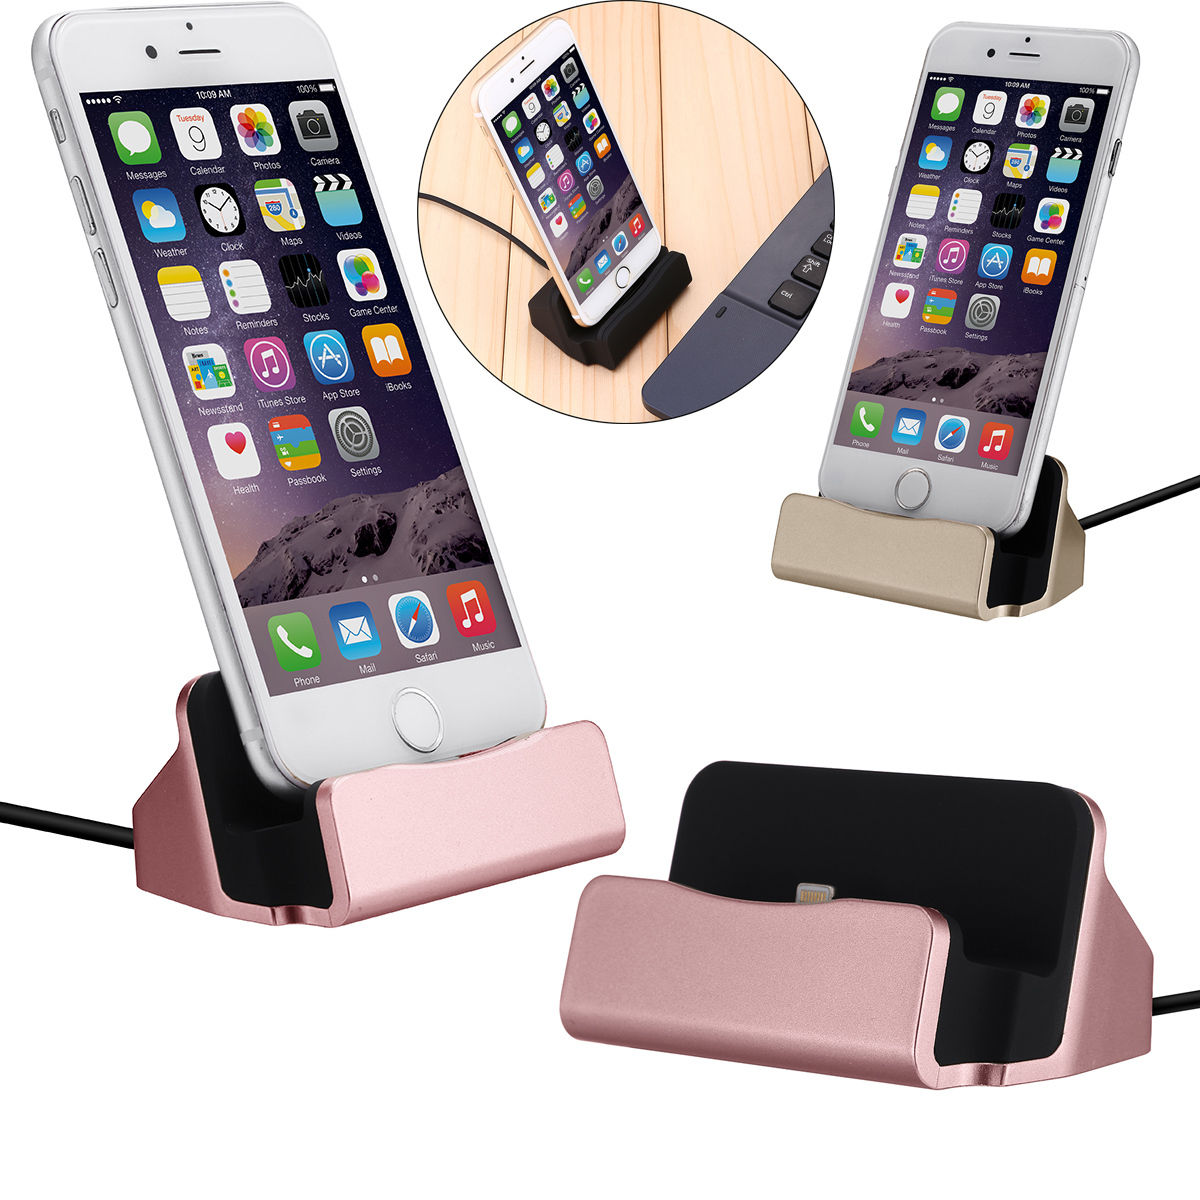 Details about Desktop Charger Stand Dock Station Sync Charge Cradle For iPhone 5s 6 6s 7 Plus